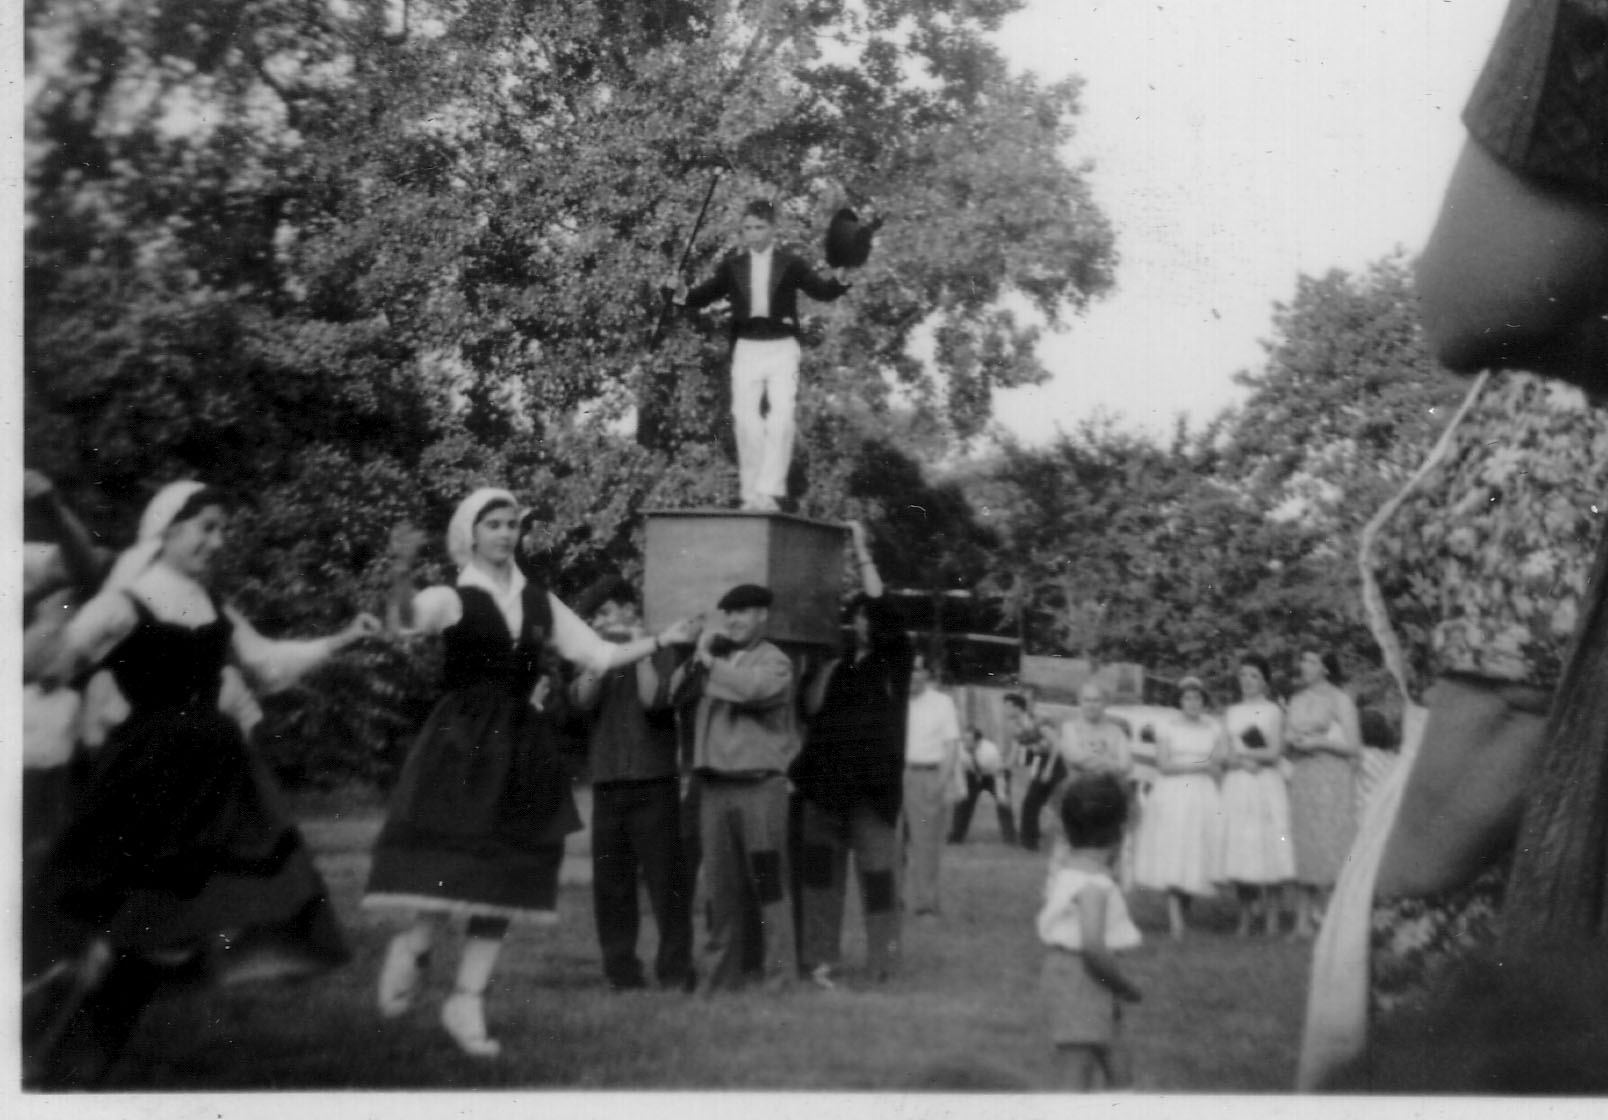 1957 NY Lekeitio dance at picnic